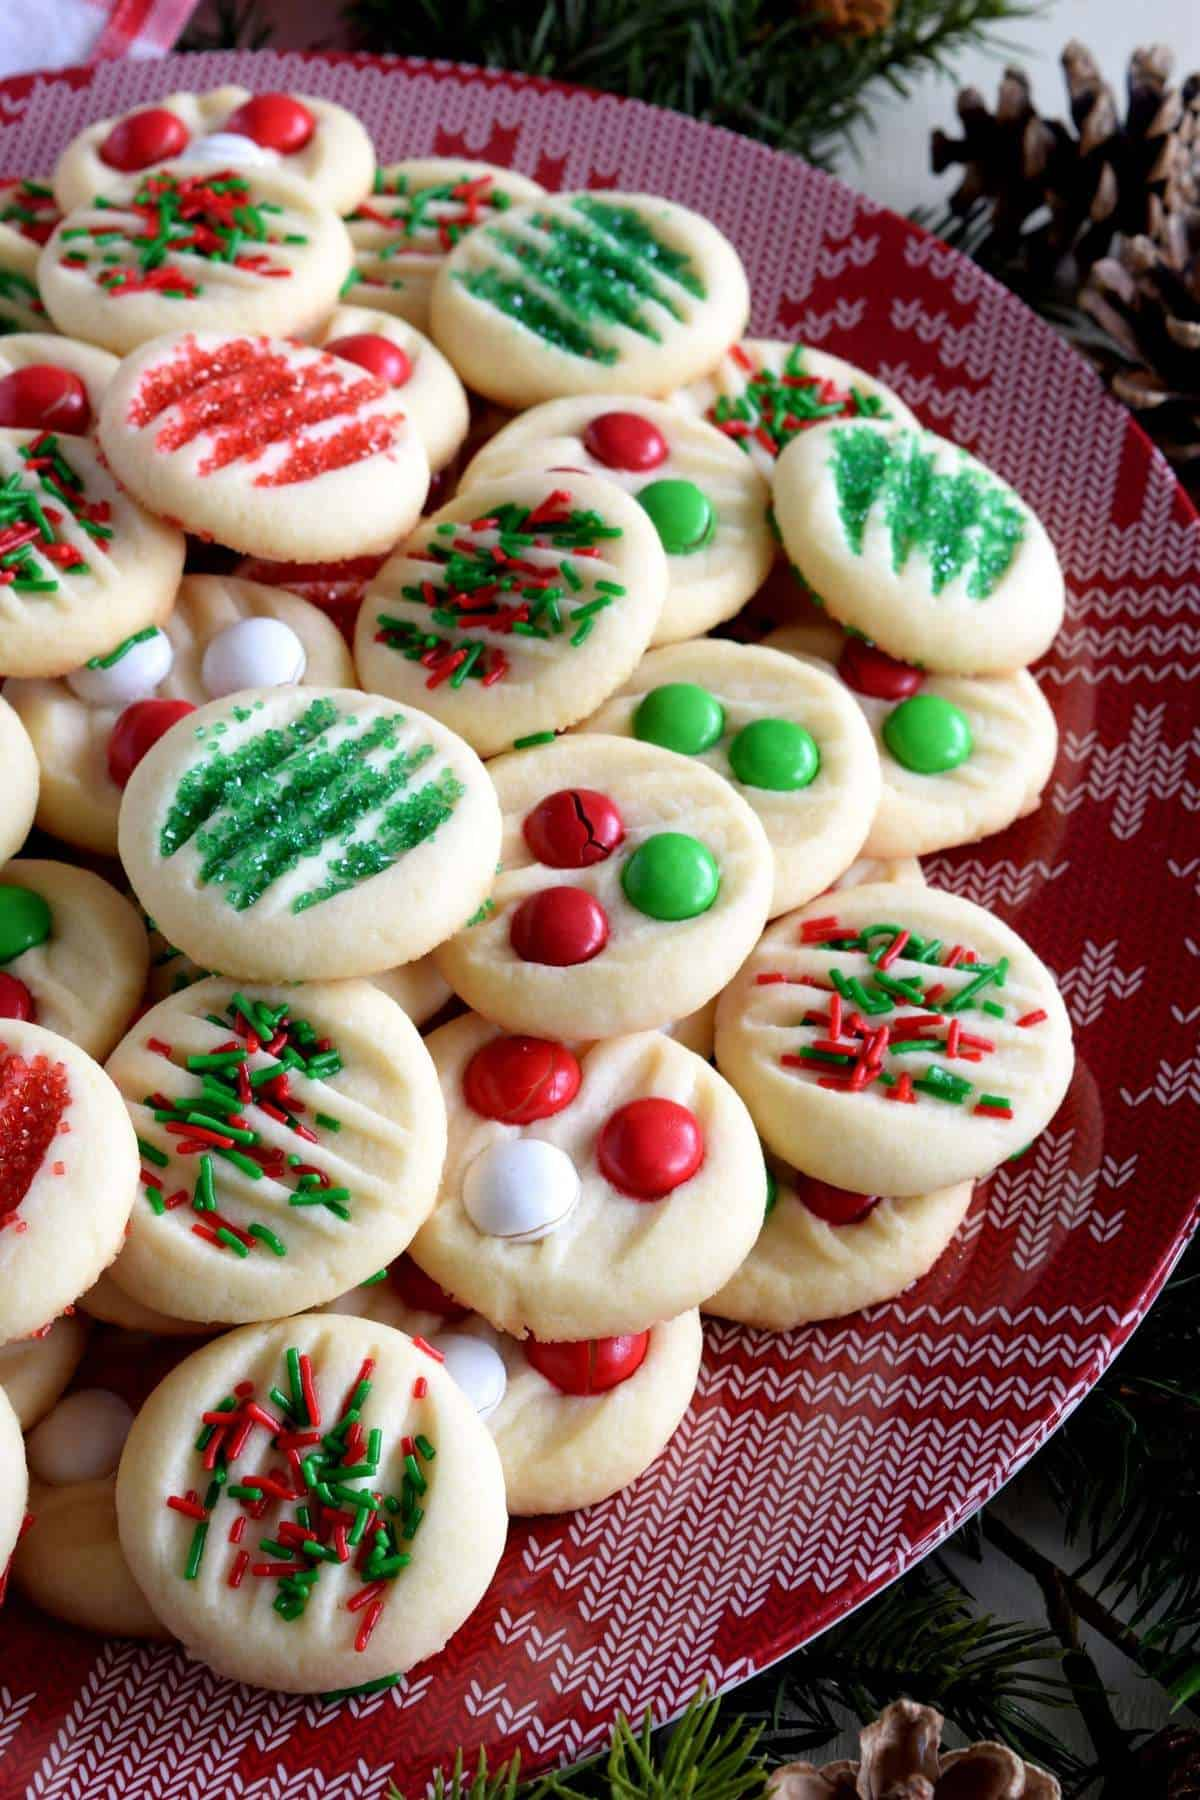 A tray full of Christmas cookie treats